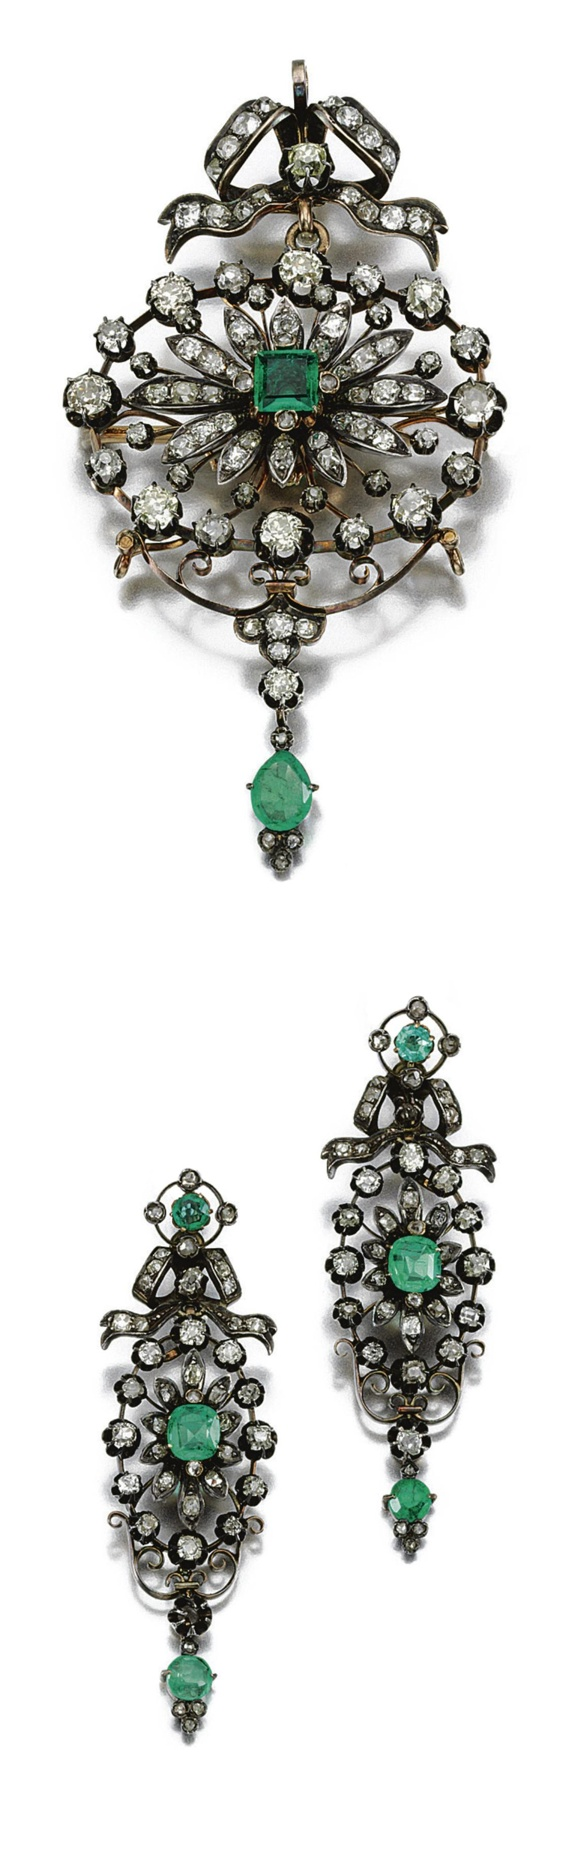 EMERALD AND DIAMOND DEMI-PARURE, LATE 19TH CENTURY.   Comprising: a brooch and pair of earrings of open work floral design set with emeralds and diamonds of various shapes, brooch with detachable surmount and central emerald and diamond section, pendant earrings each with detachable surmounts, later fittings.